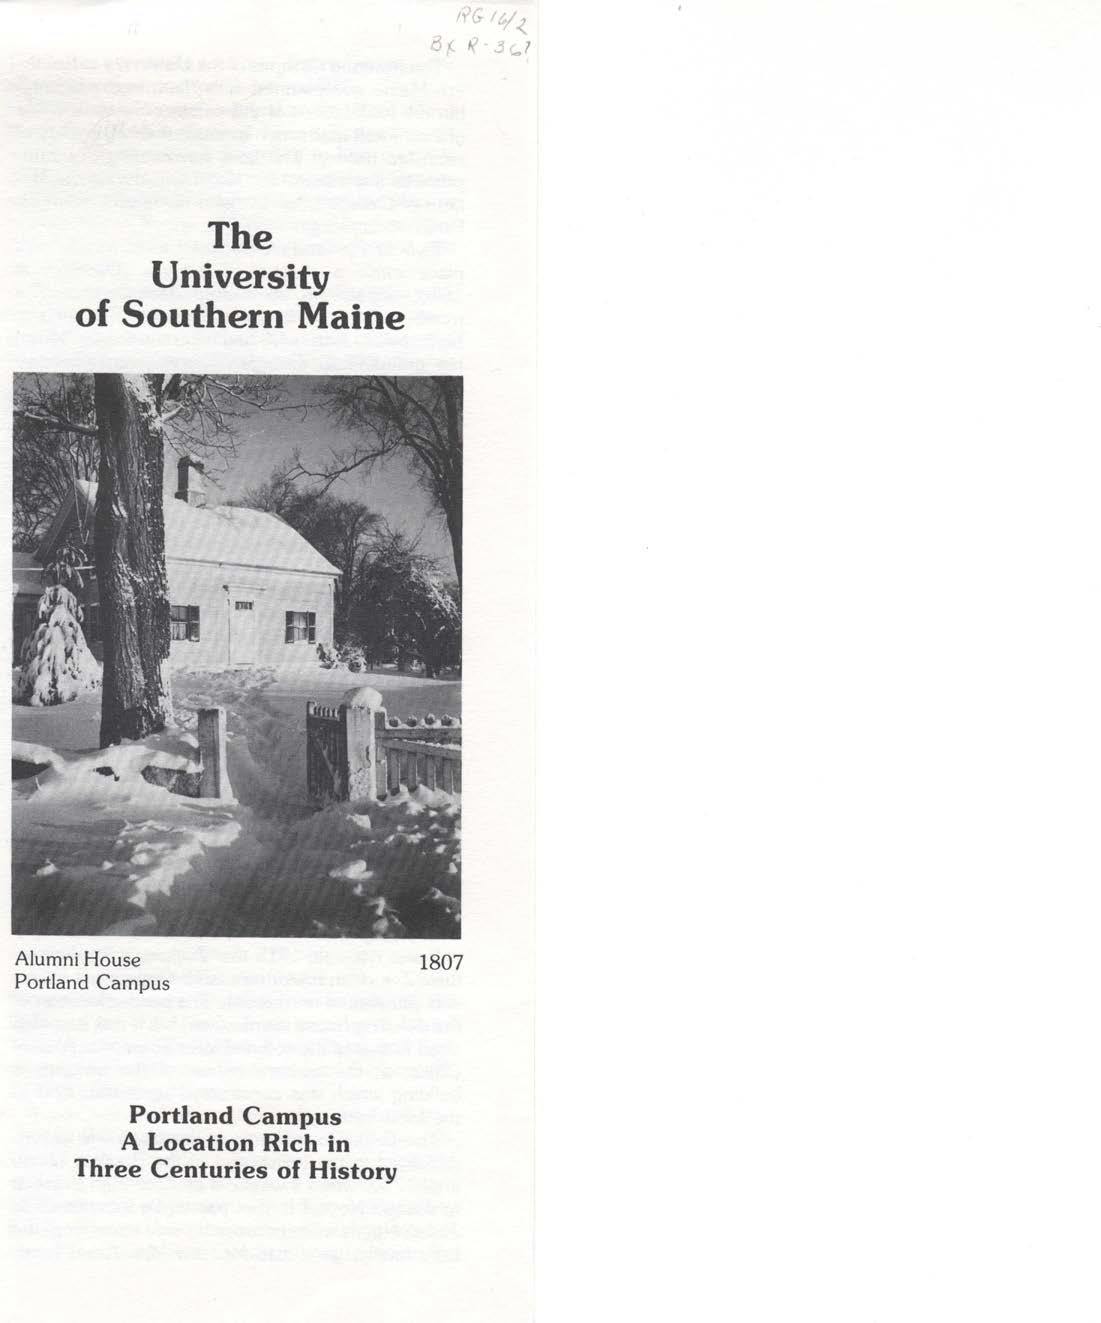 A rare photo of the barn itself, taken in 1817, sourced from an informational brochure published by the University of Southern Maine